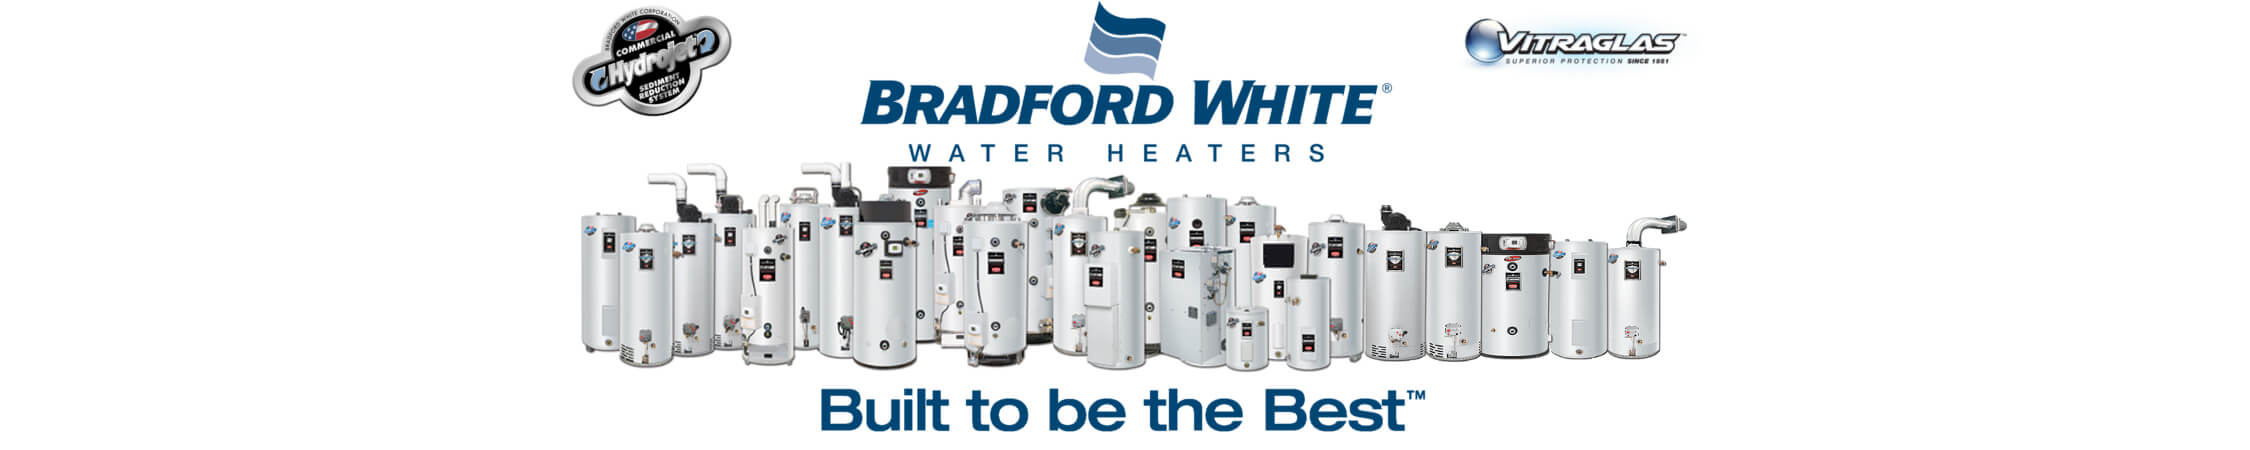 New Bradford White Homepage banner showing all models